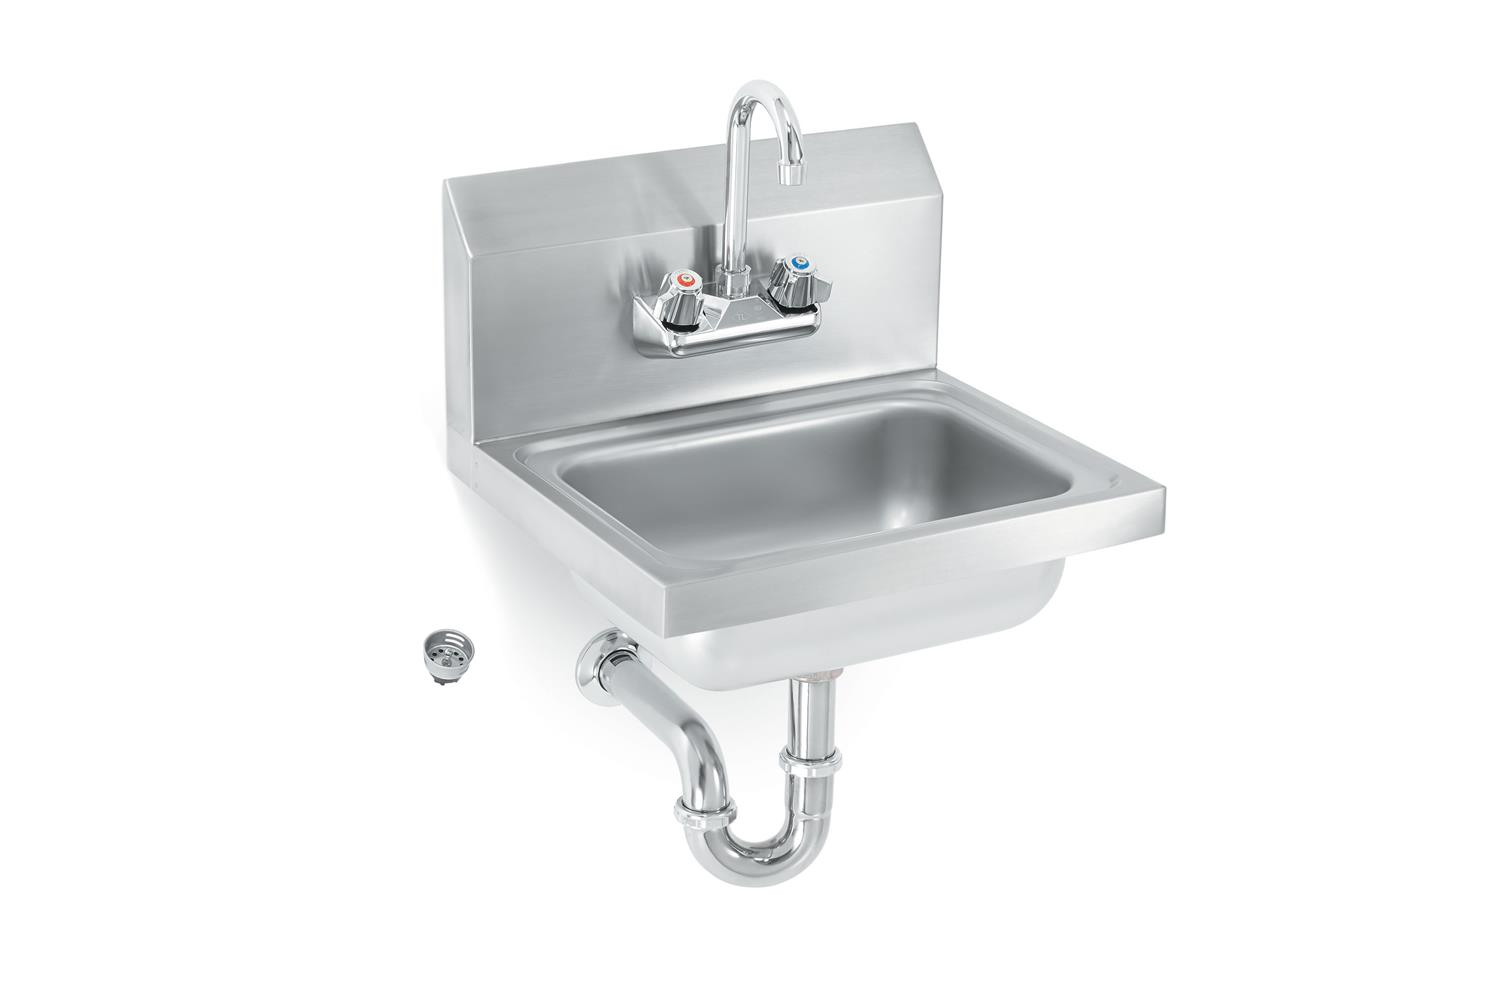 Vollrath K1410CS Sink with splash guards, strainer and gooseneck faucet